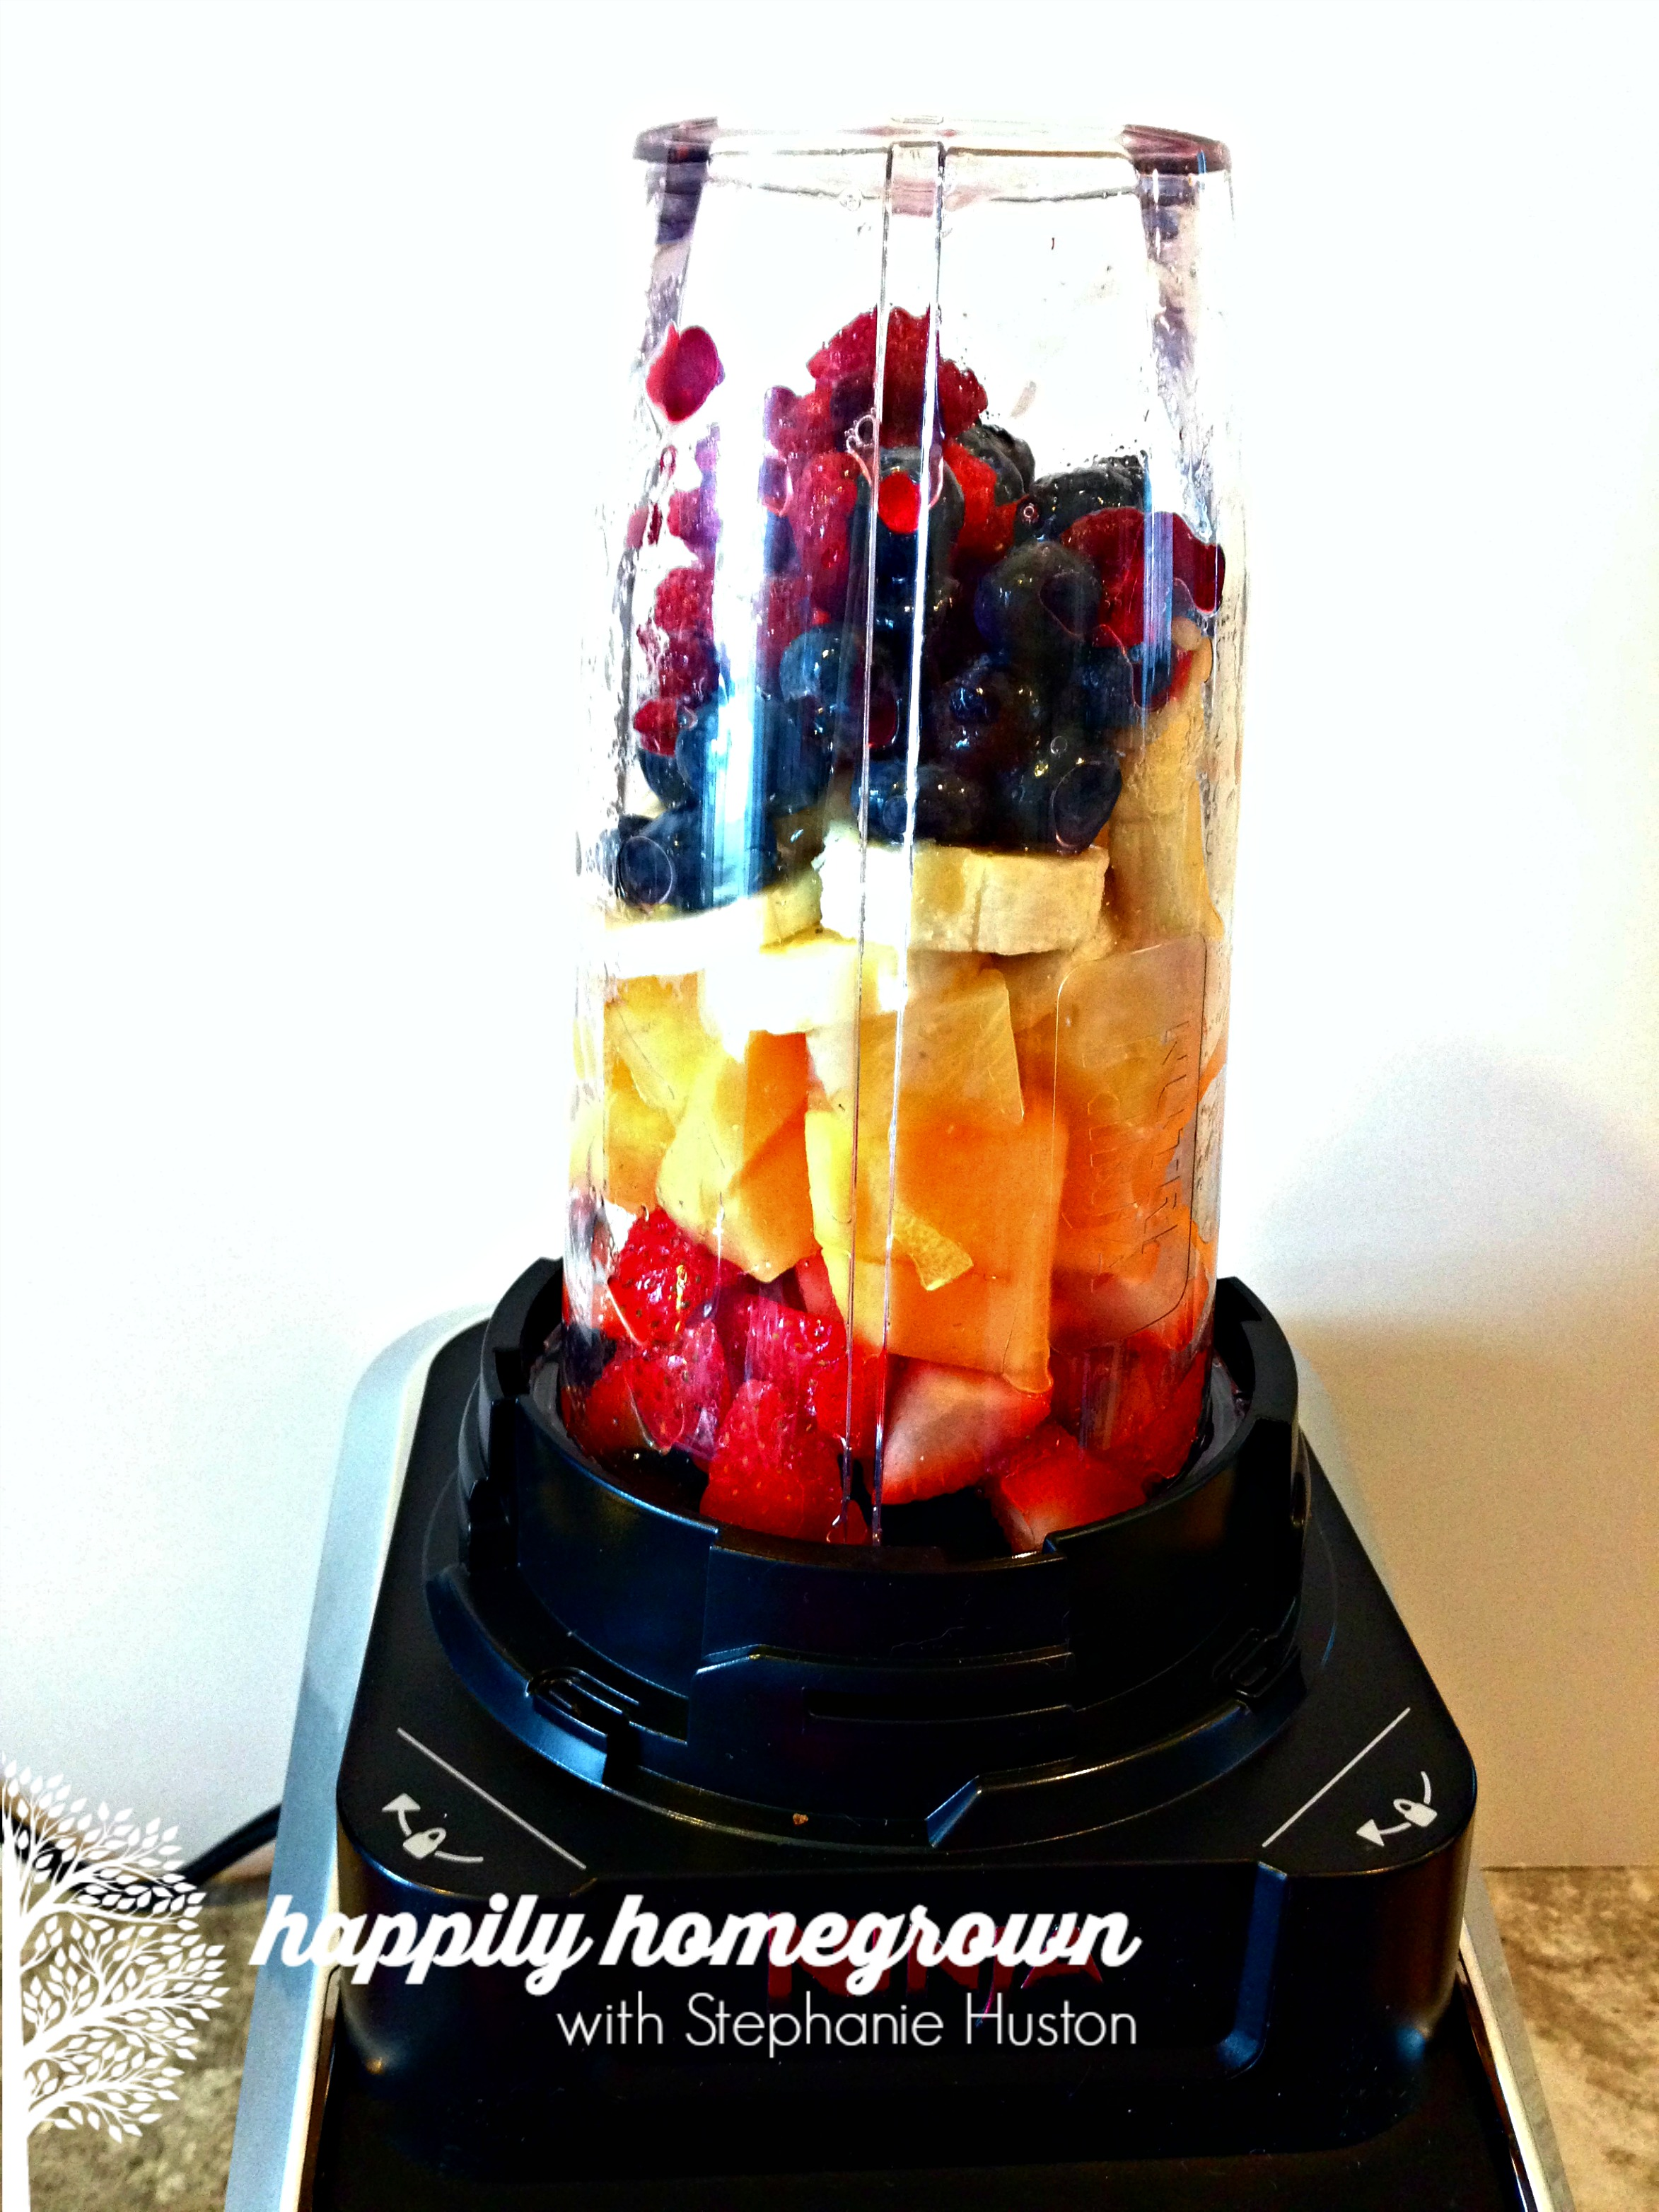 Eat a rainbow daily. Consume 4-5 cups of fruits and vegetables each and every day. Here's how I get 75% of my fruit & veggies out of the way first thing in the morning!